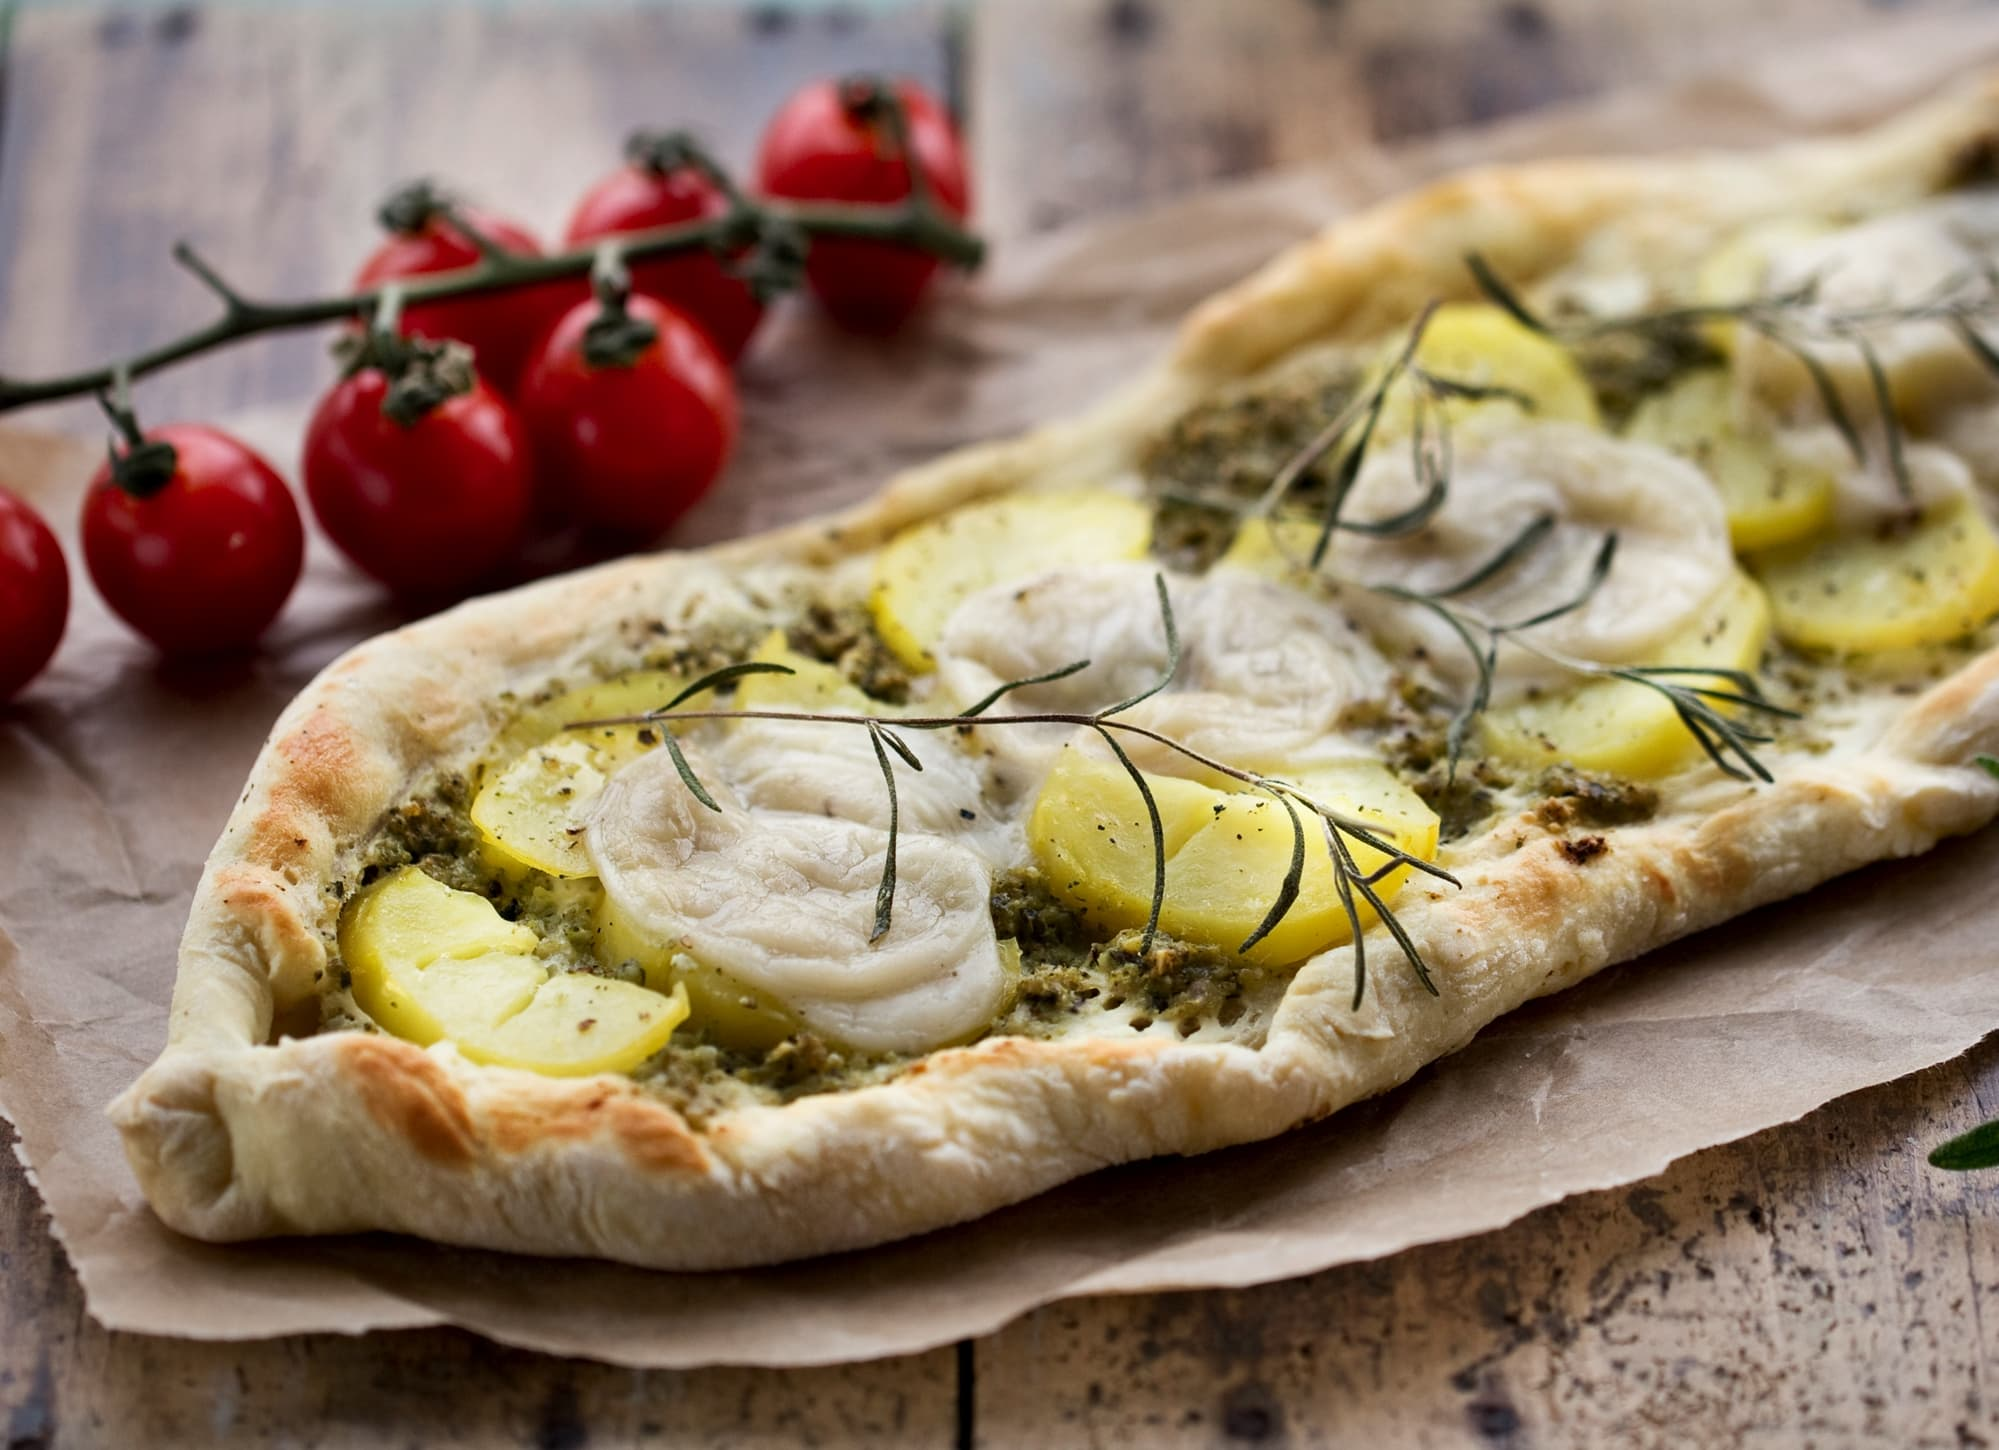 PIZZA PATATA MIT BROKKOLI-PESTO